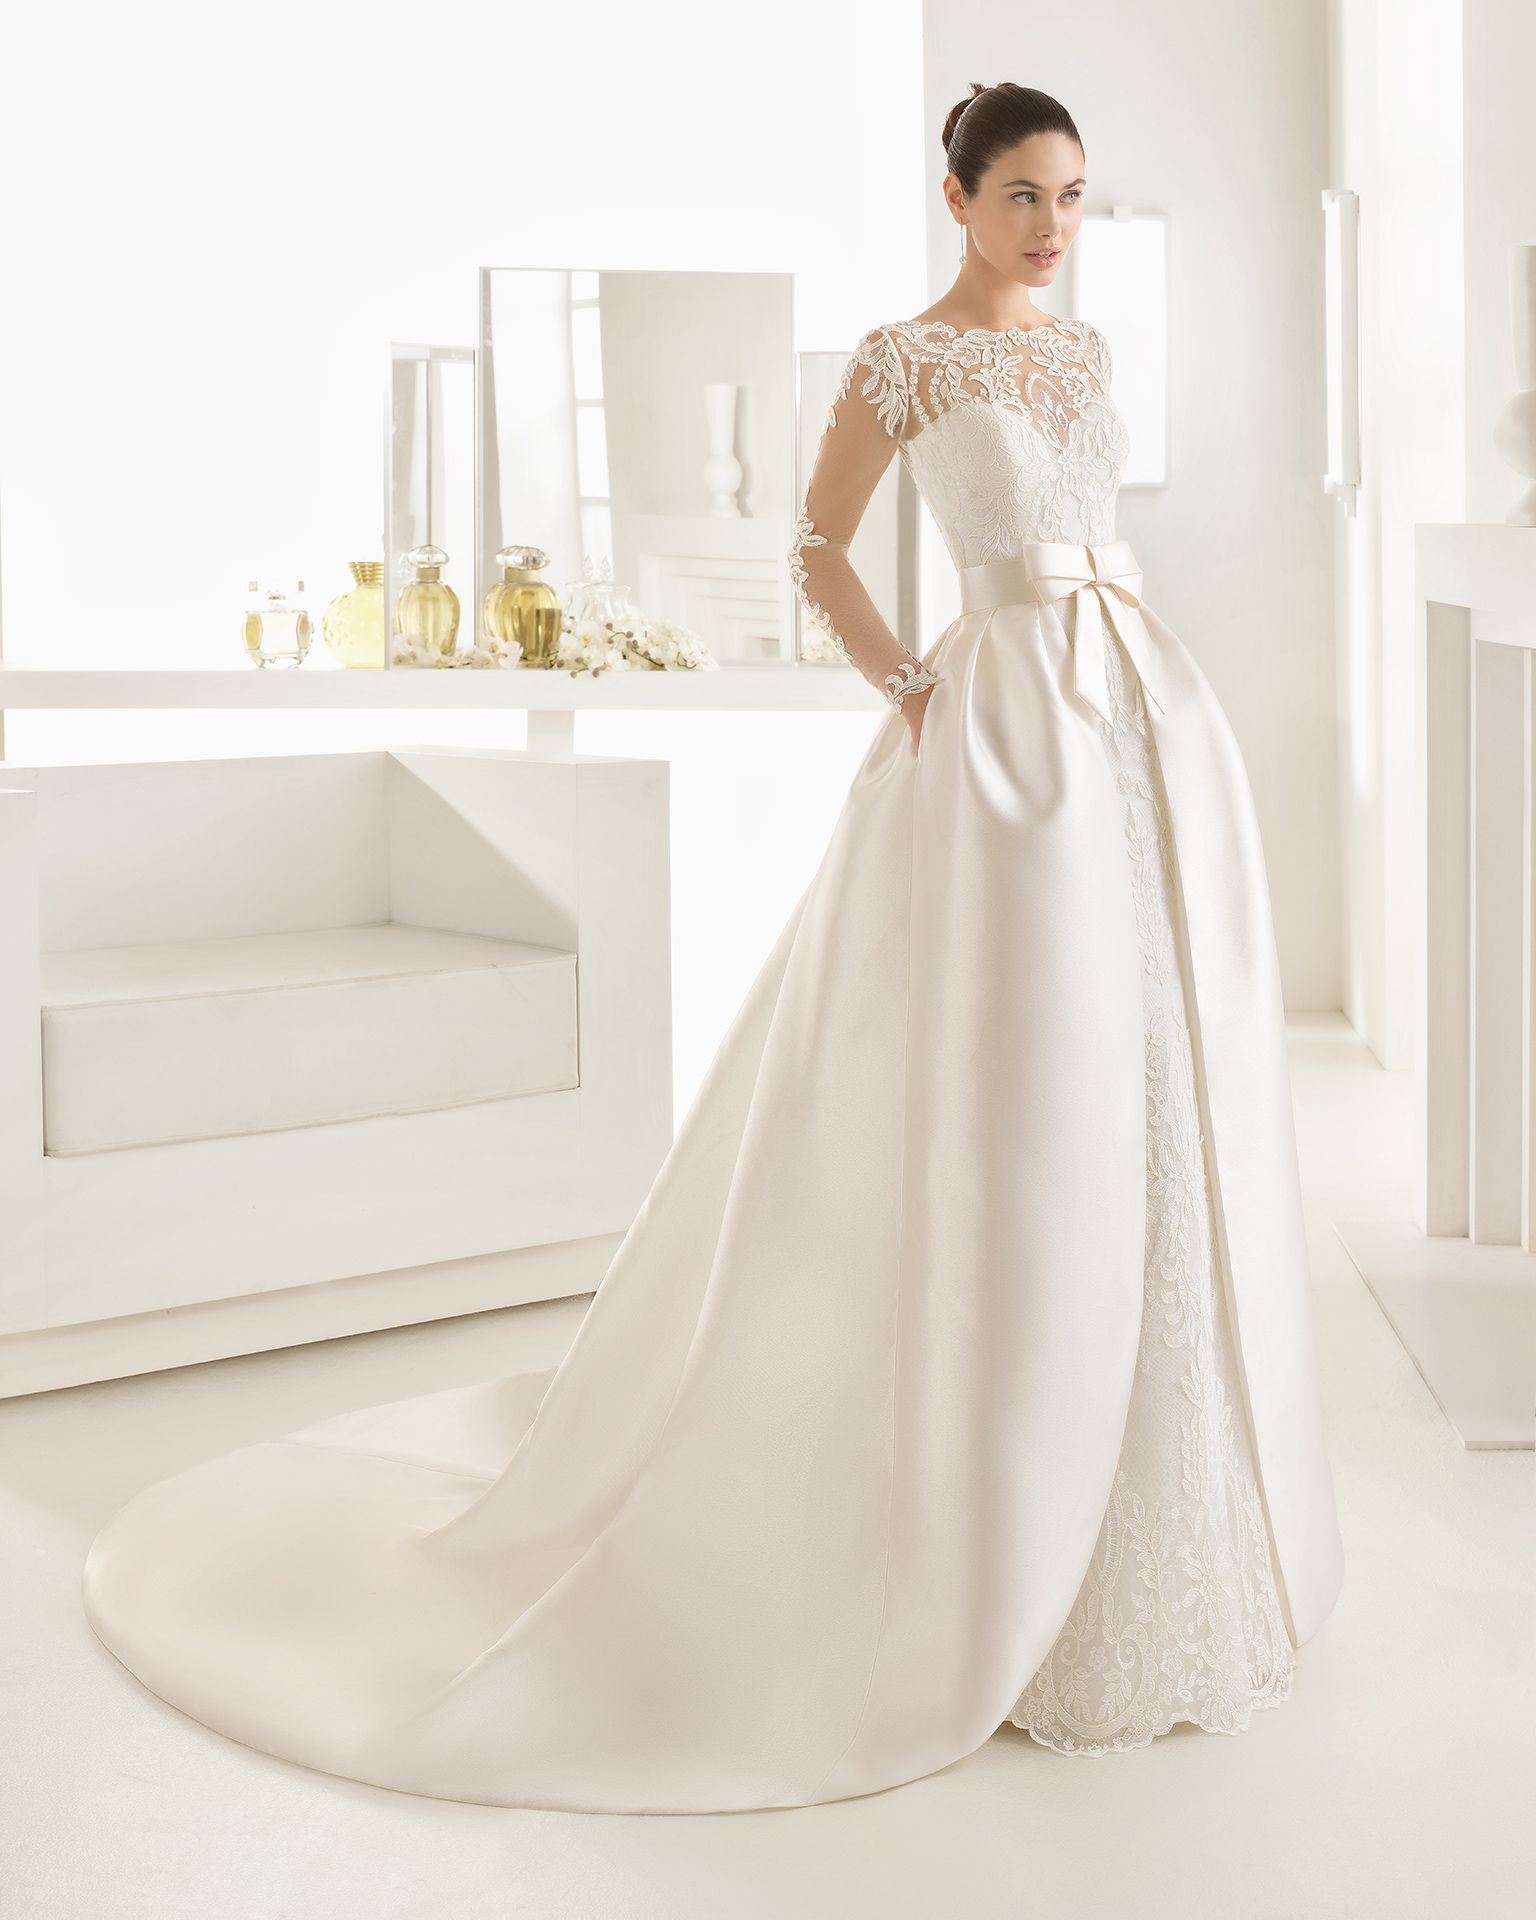 olaf 2017 bridal collection rosa clará two lace wedding Wedding Dress Designers Rosa Clara schaffer's in des moines, iowa and in scottsdale, arizona carries rosa clara style olaf long sleeved lace column dress with boat neckline in natural wedding dress designers rosa clara